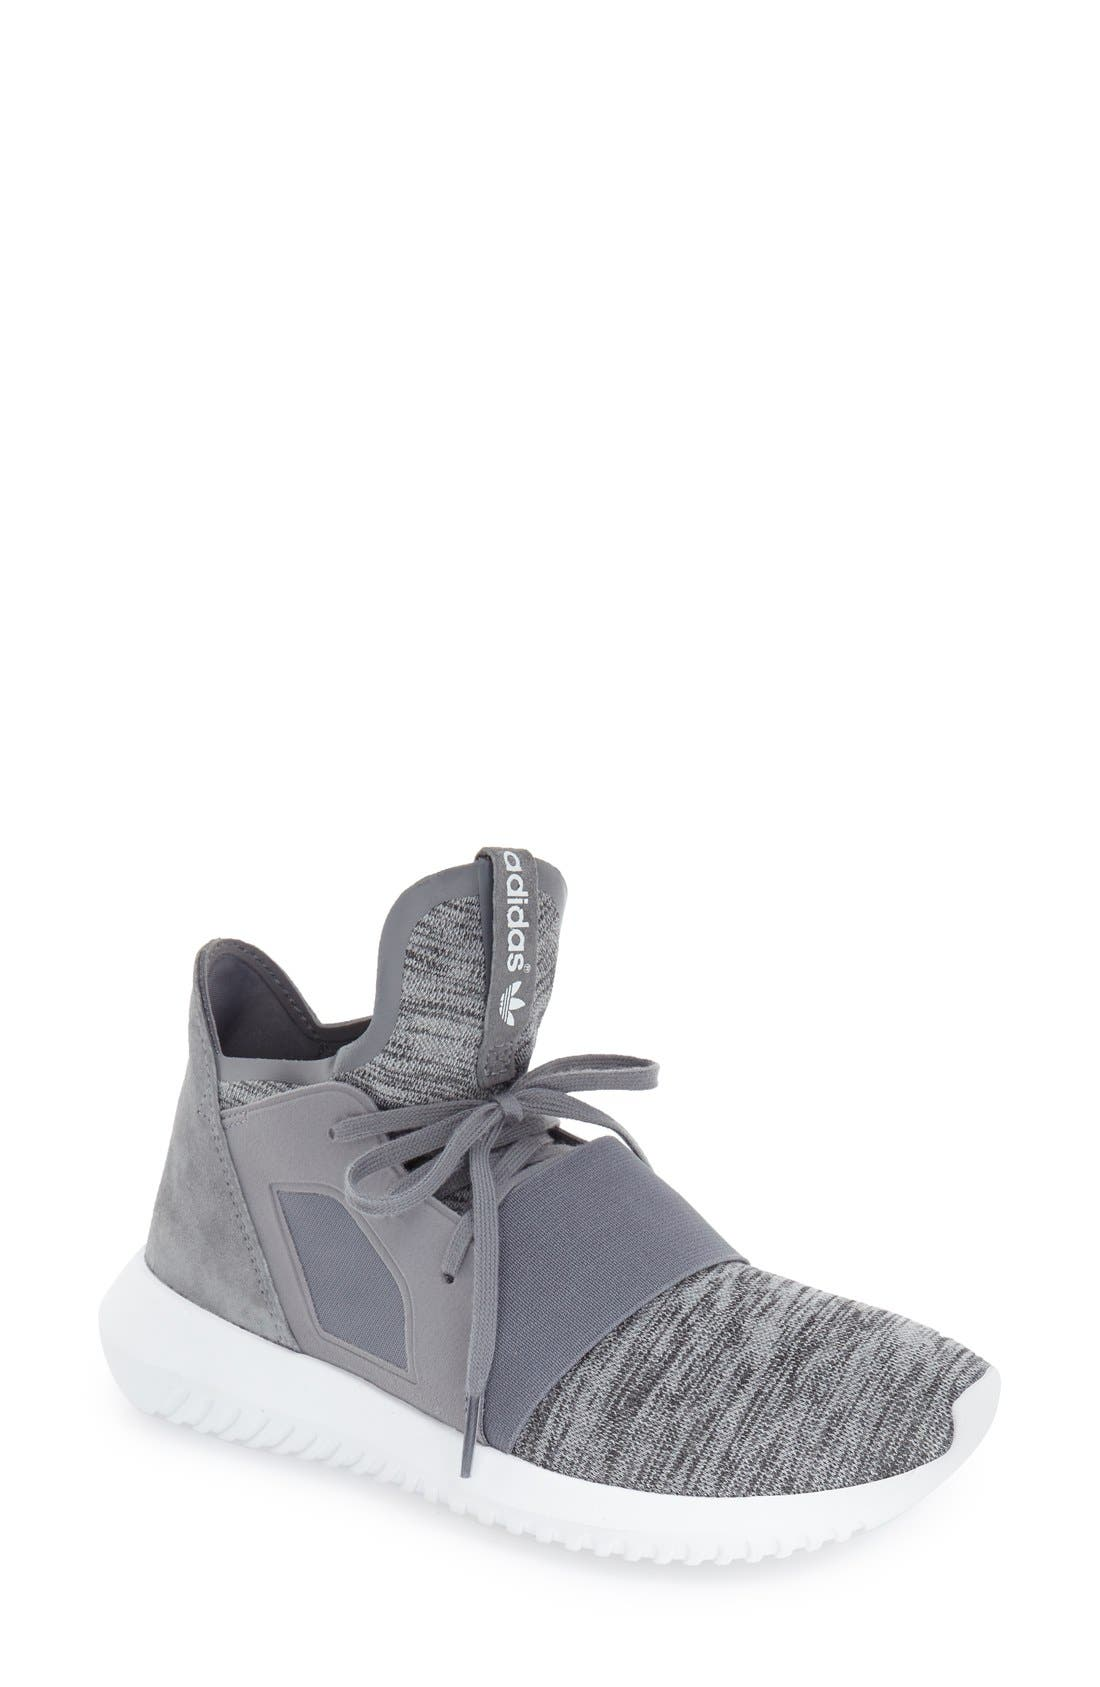 Alternate Image 1 Selected - adidas Tubular Defiant Sneaker (Women)